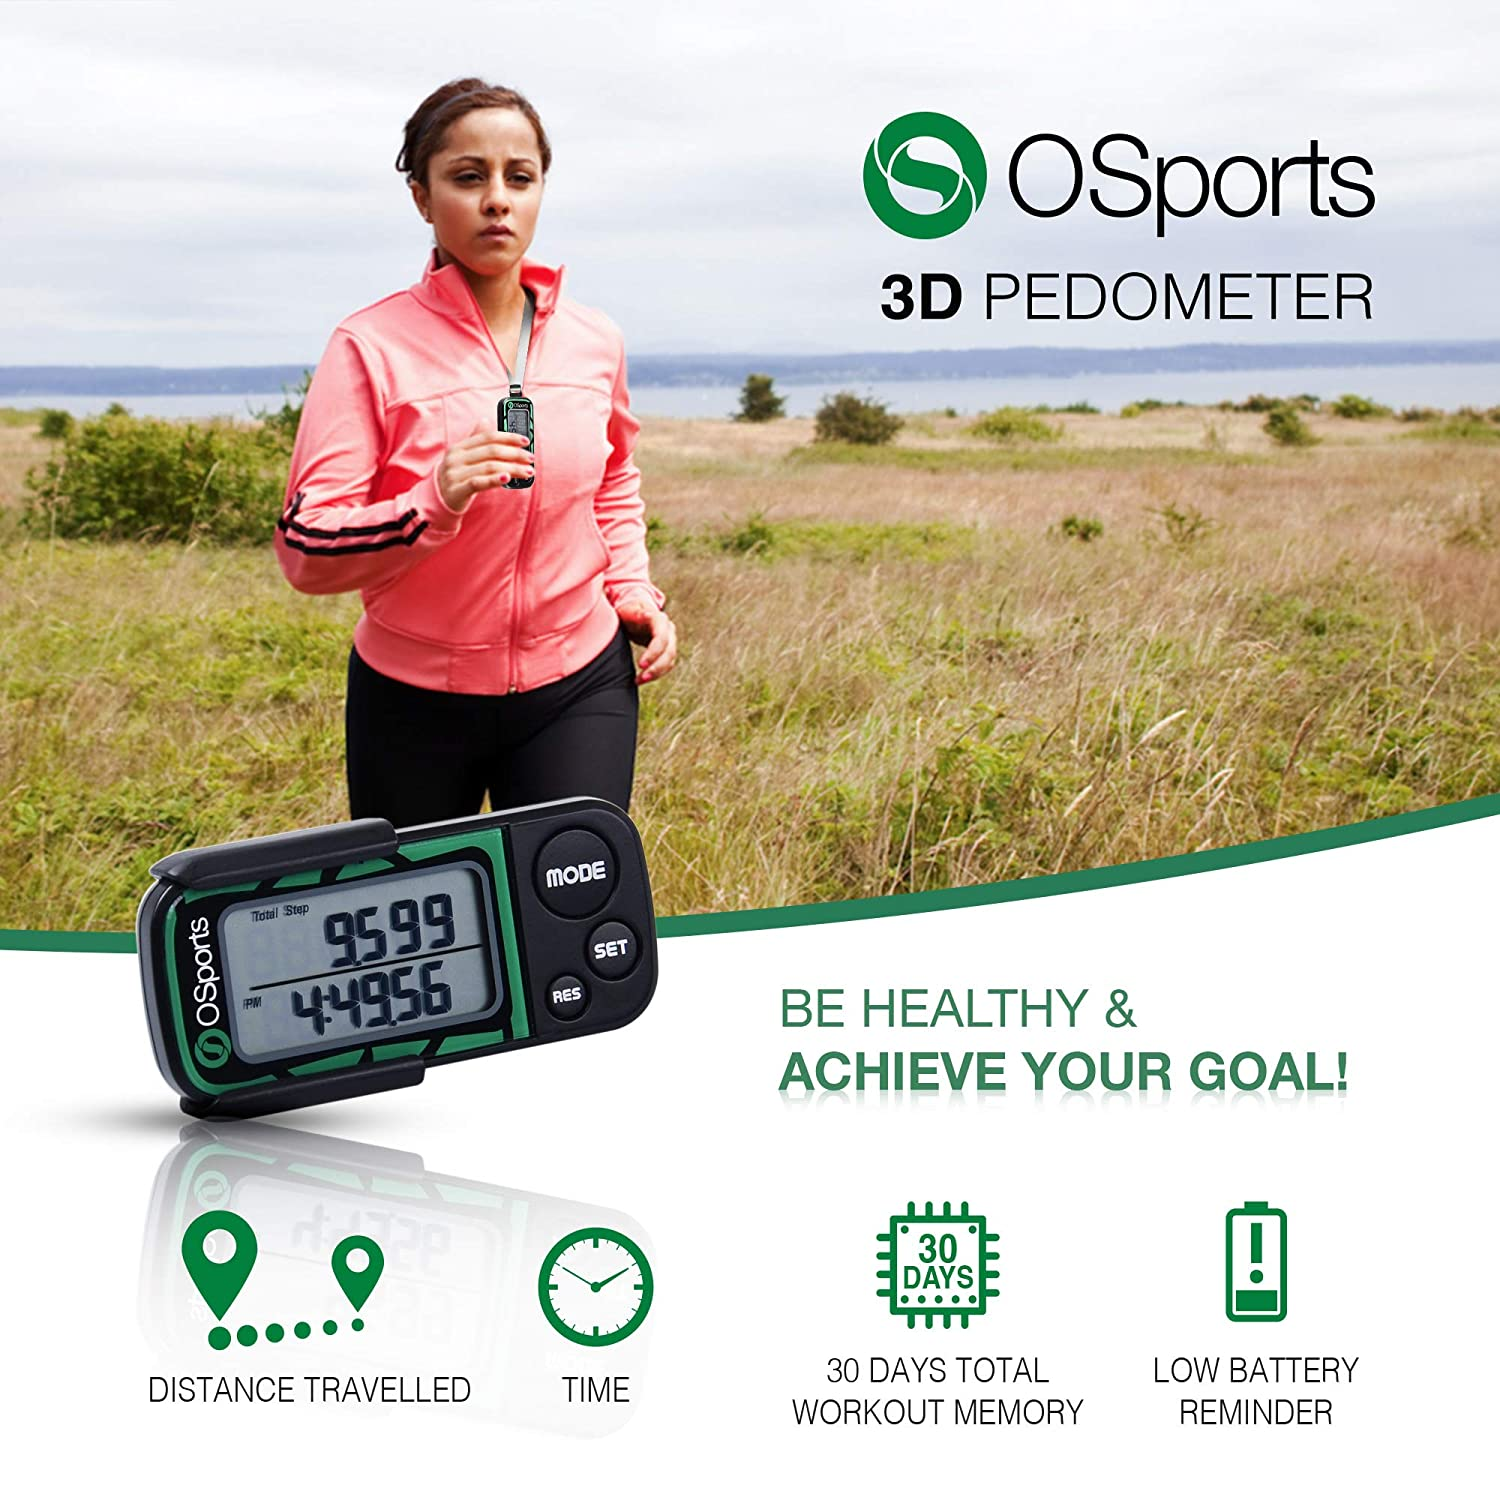 30 Days Memory Premium Calorie Step Distance Counter Daily Target Monitor Easy to Use! Exercise Time Clip /& Strap Perfect for Kids Women Men OSports 3D Pedometer for Walking /& Running